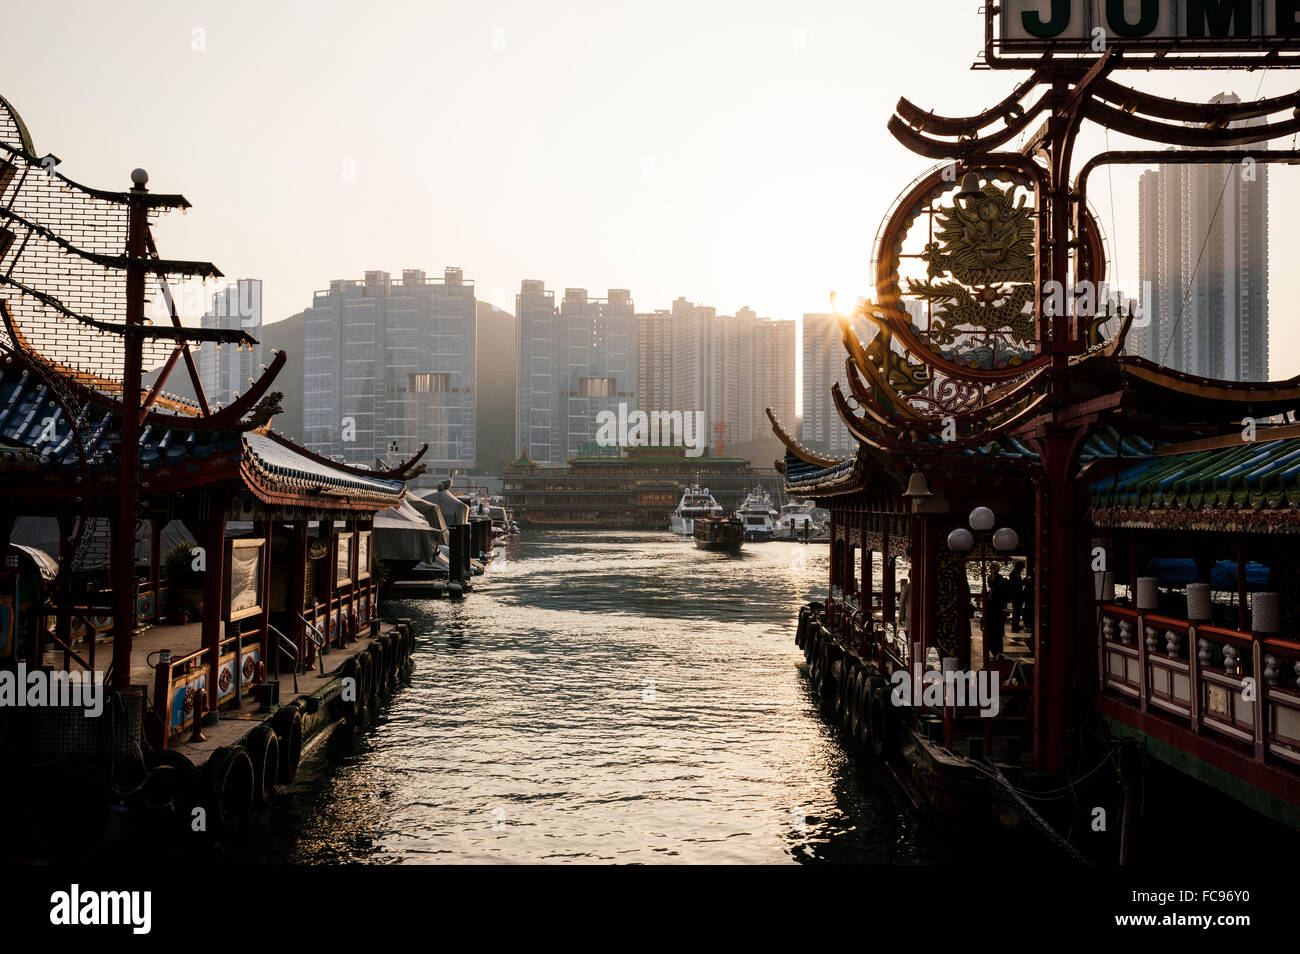 Aberdeen Harbour at sunset, Hong Kong Island, China, Asia - Stock Image